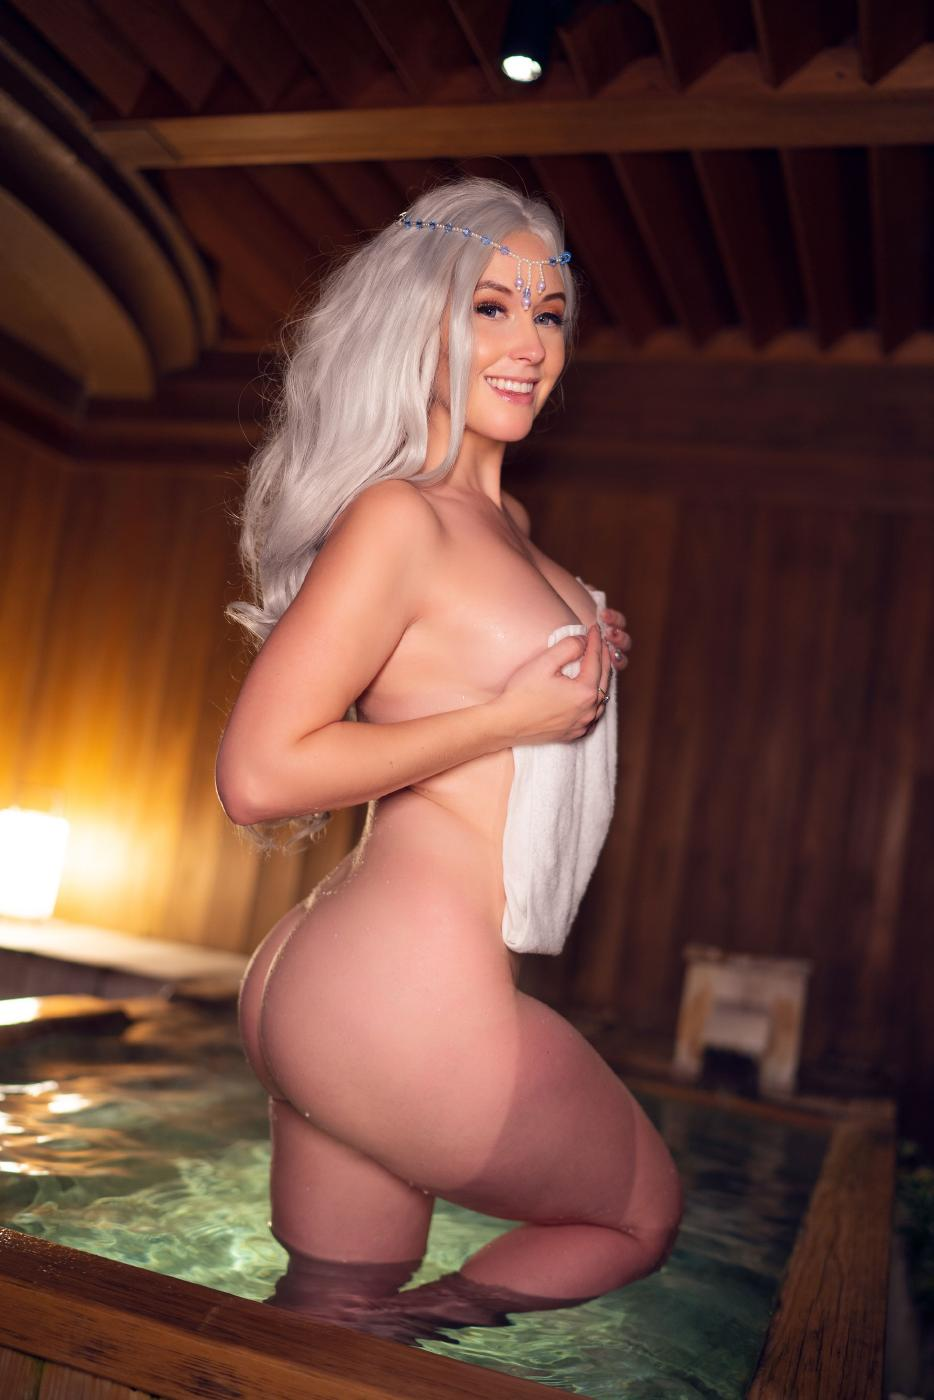 Meg Turney Onlyfans Nude Winter Goddess Onsen Leaked0004